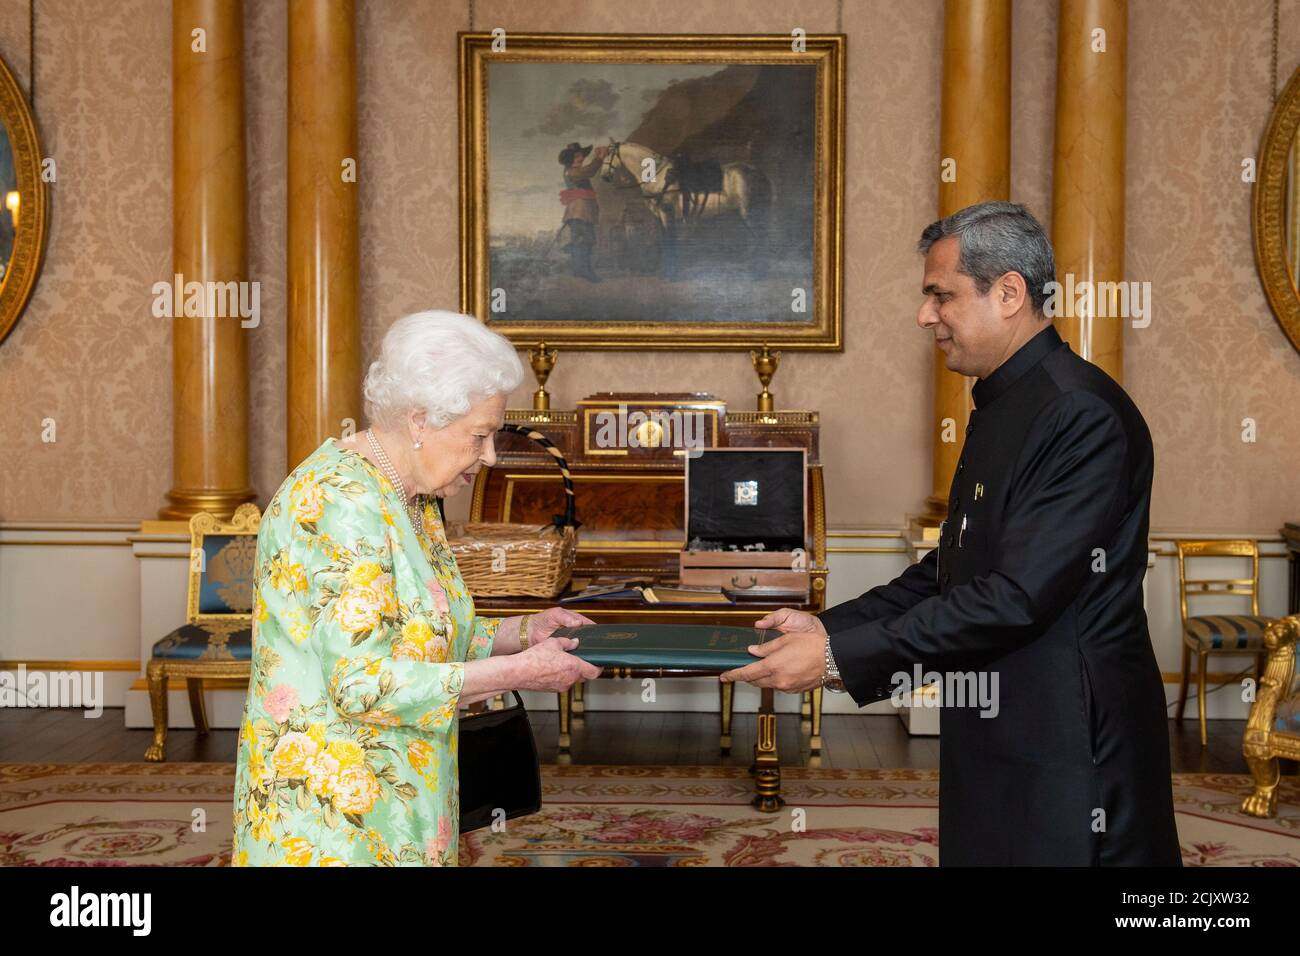 Britain's Queen Elizabeth II meets High Commissioner of Pakistan Mohammad Nafees Zakaria during a private audience at Buckingham Palace in central London, Britain June 25, 2019. Picture taken June 25, 2019. Dominic Lipinski/Pool via REUTERS Stock Photo